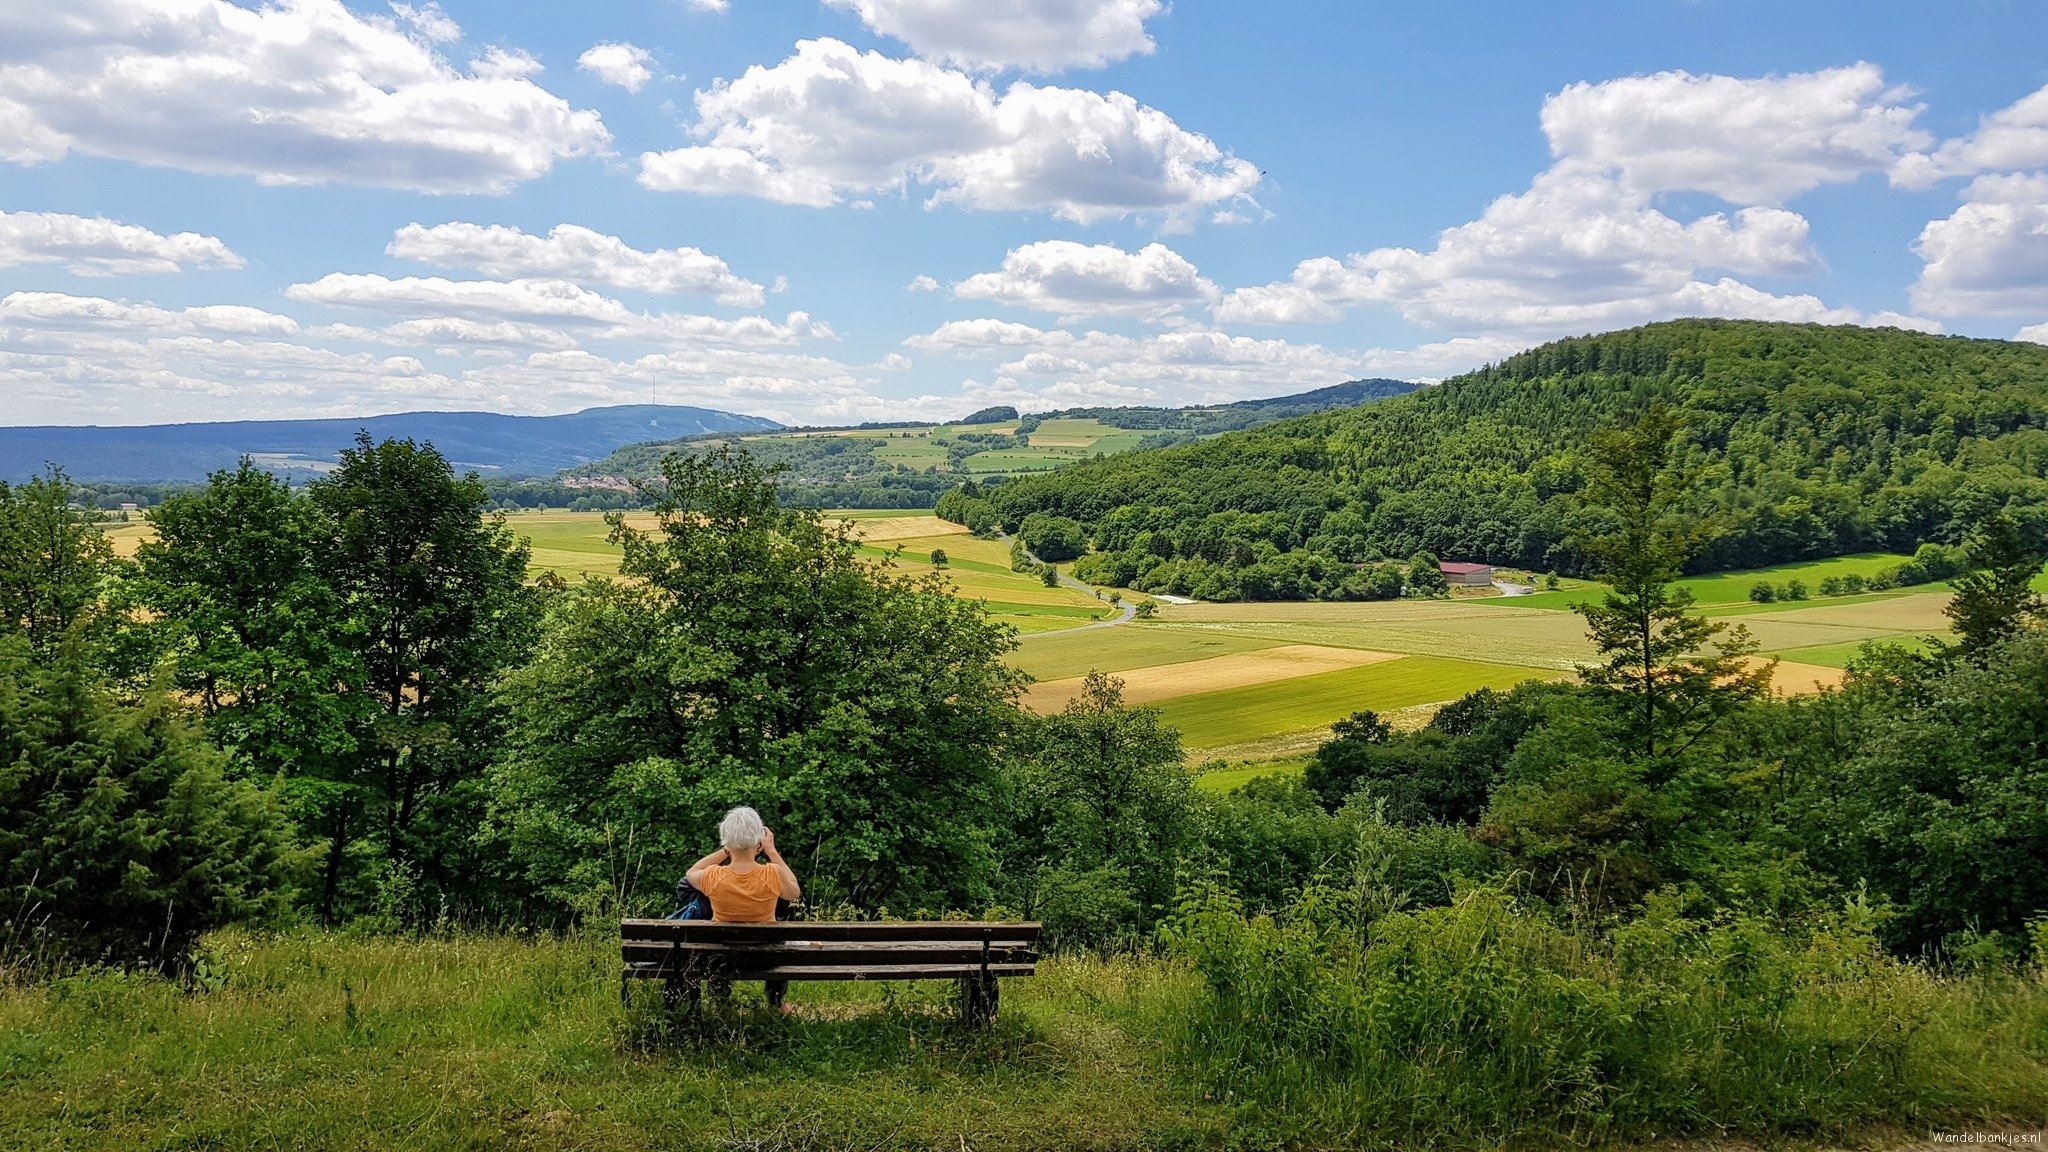 rt-wolfswandelplan-bayerische-rhon-bij-oberelsbach-walking-benches-https-t-co-hucy5rdgpk